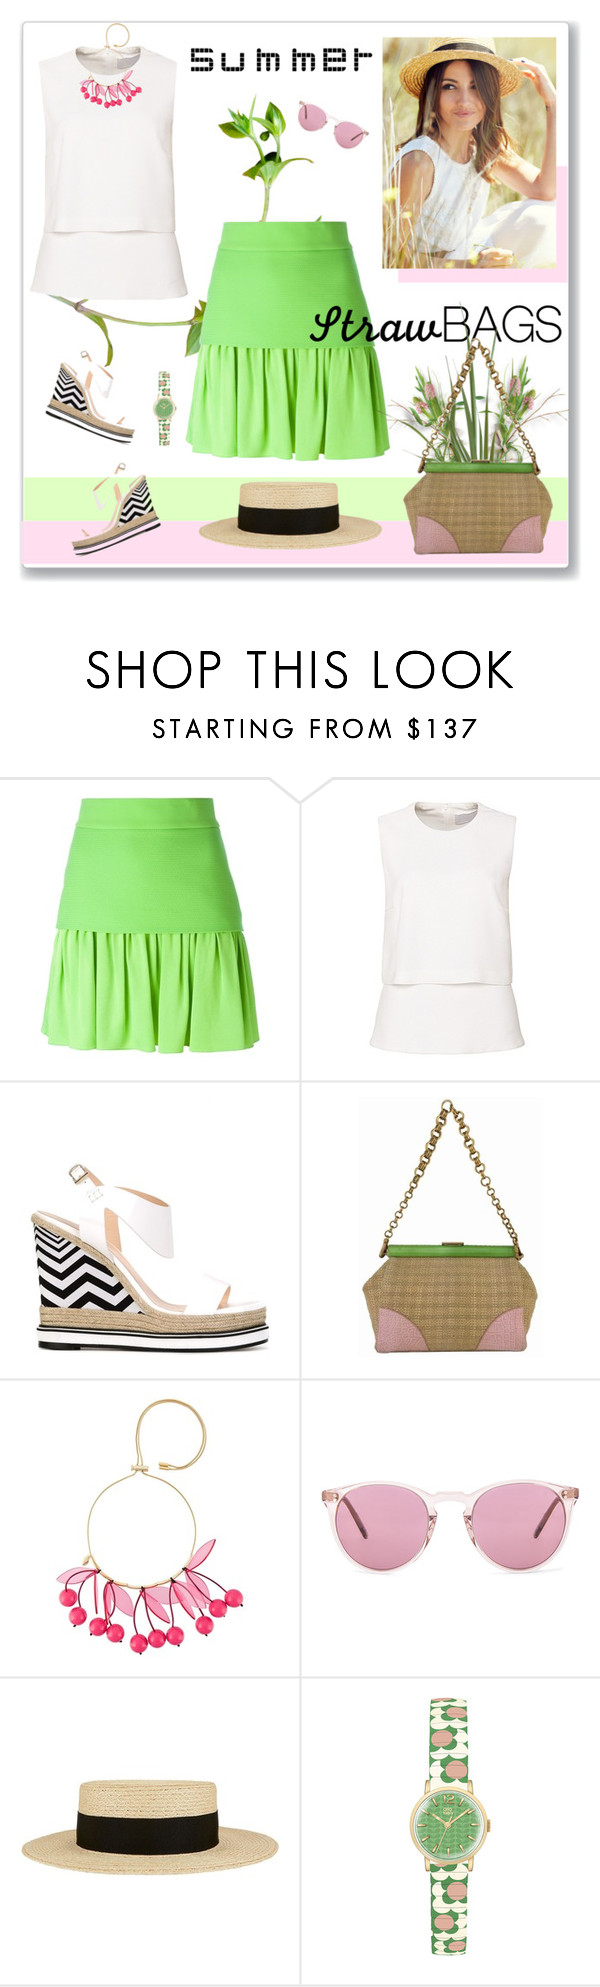 """""""Carry On: Straw Bags"""" by likepolyfashion ❤ liked on Polyvore featuring FAUSTO PUGLISI, Nicholas Kirkwood, Prada, P.A.R.O.S.H., Oliver Peoples, Eugenia Kim, Orla Kiely and strawbags"""